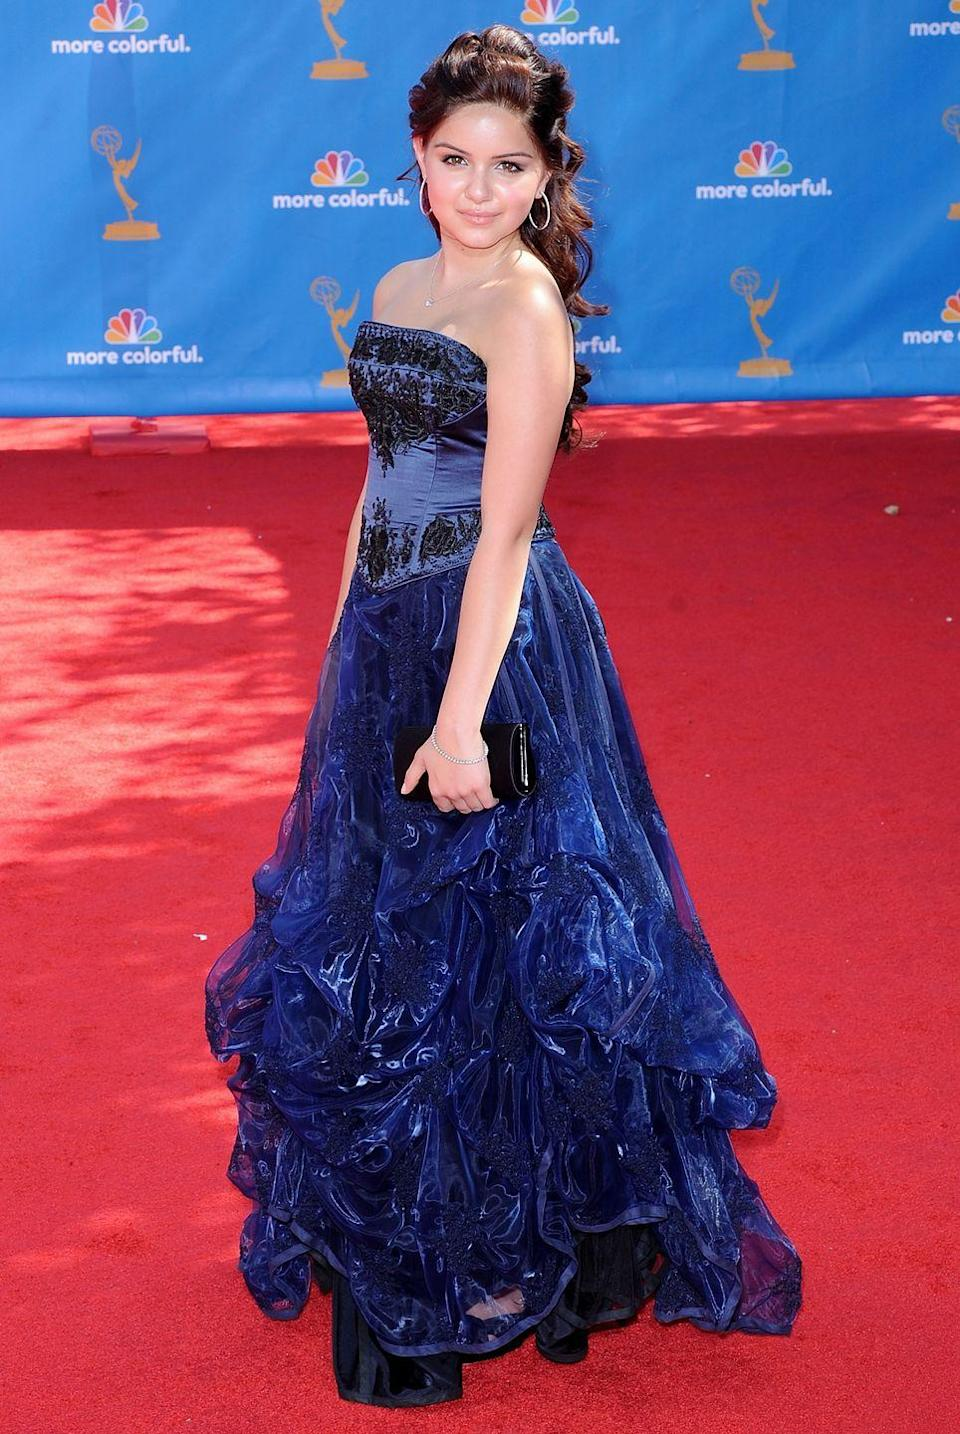 """<p>Winter managed to look age appropriate <em>and</em><span class=""""redactor-invisible-space""""> elegant at the 2010 Emmy Awards. </span></p>"""